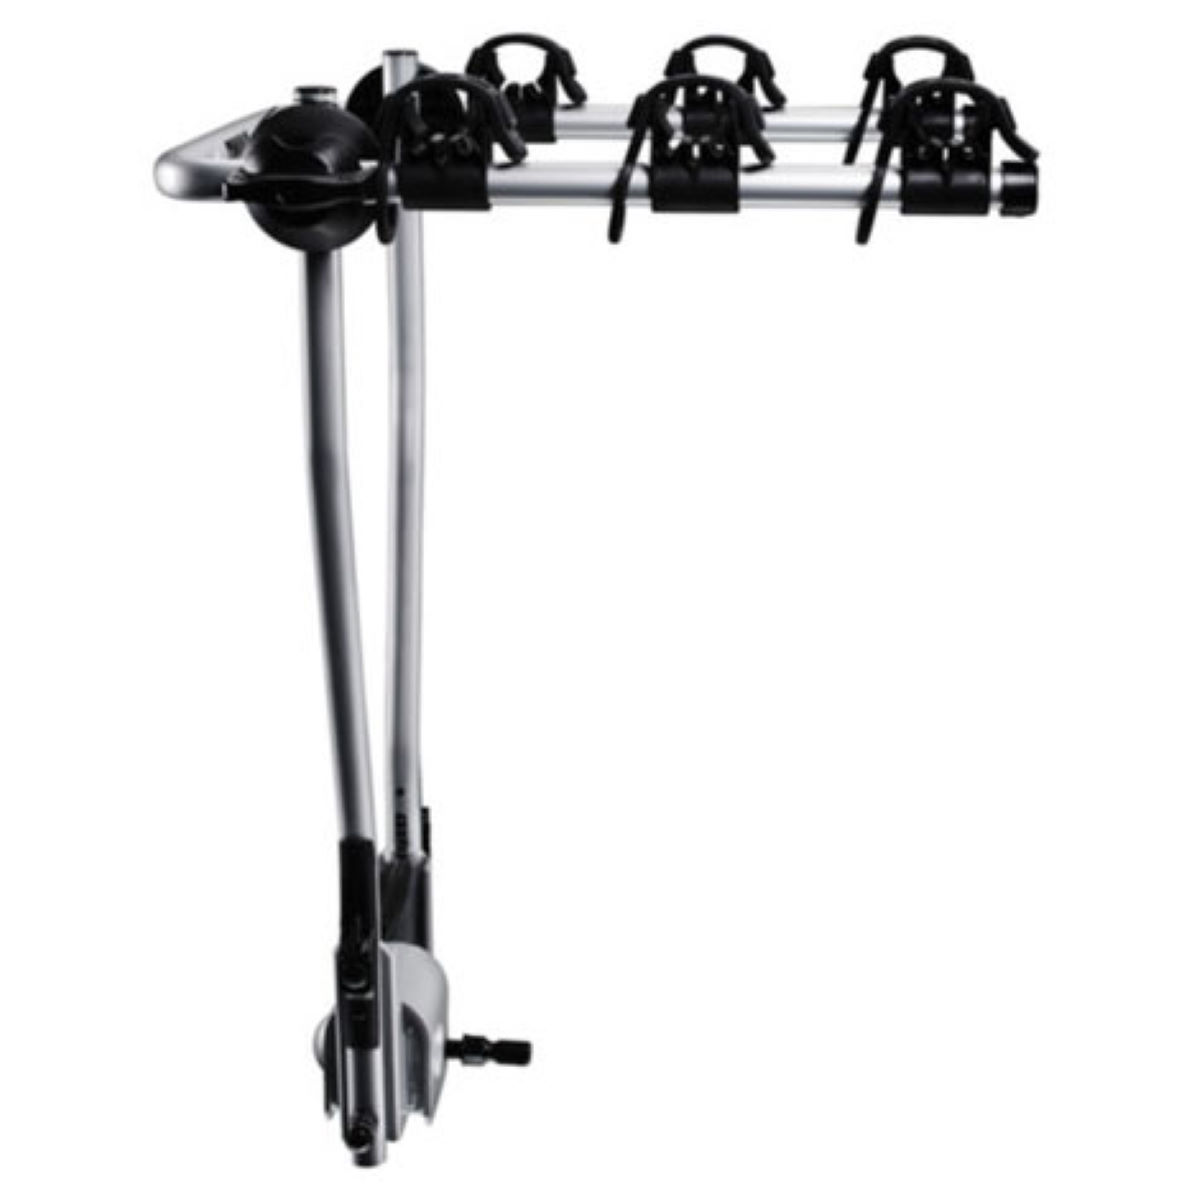 Thule 972 HangOn 3 Bike Towball Carrier   Car Racks